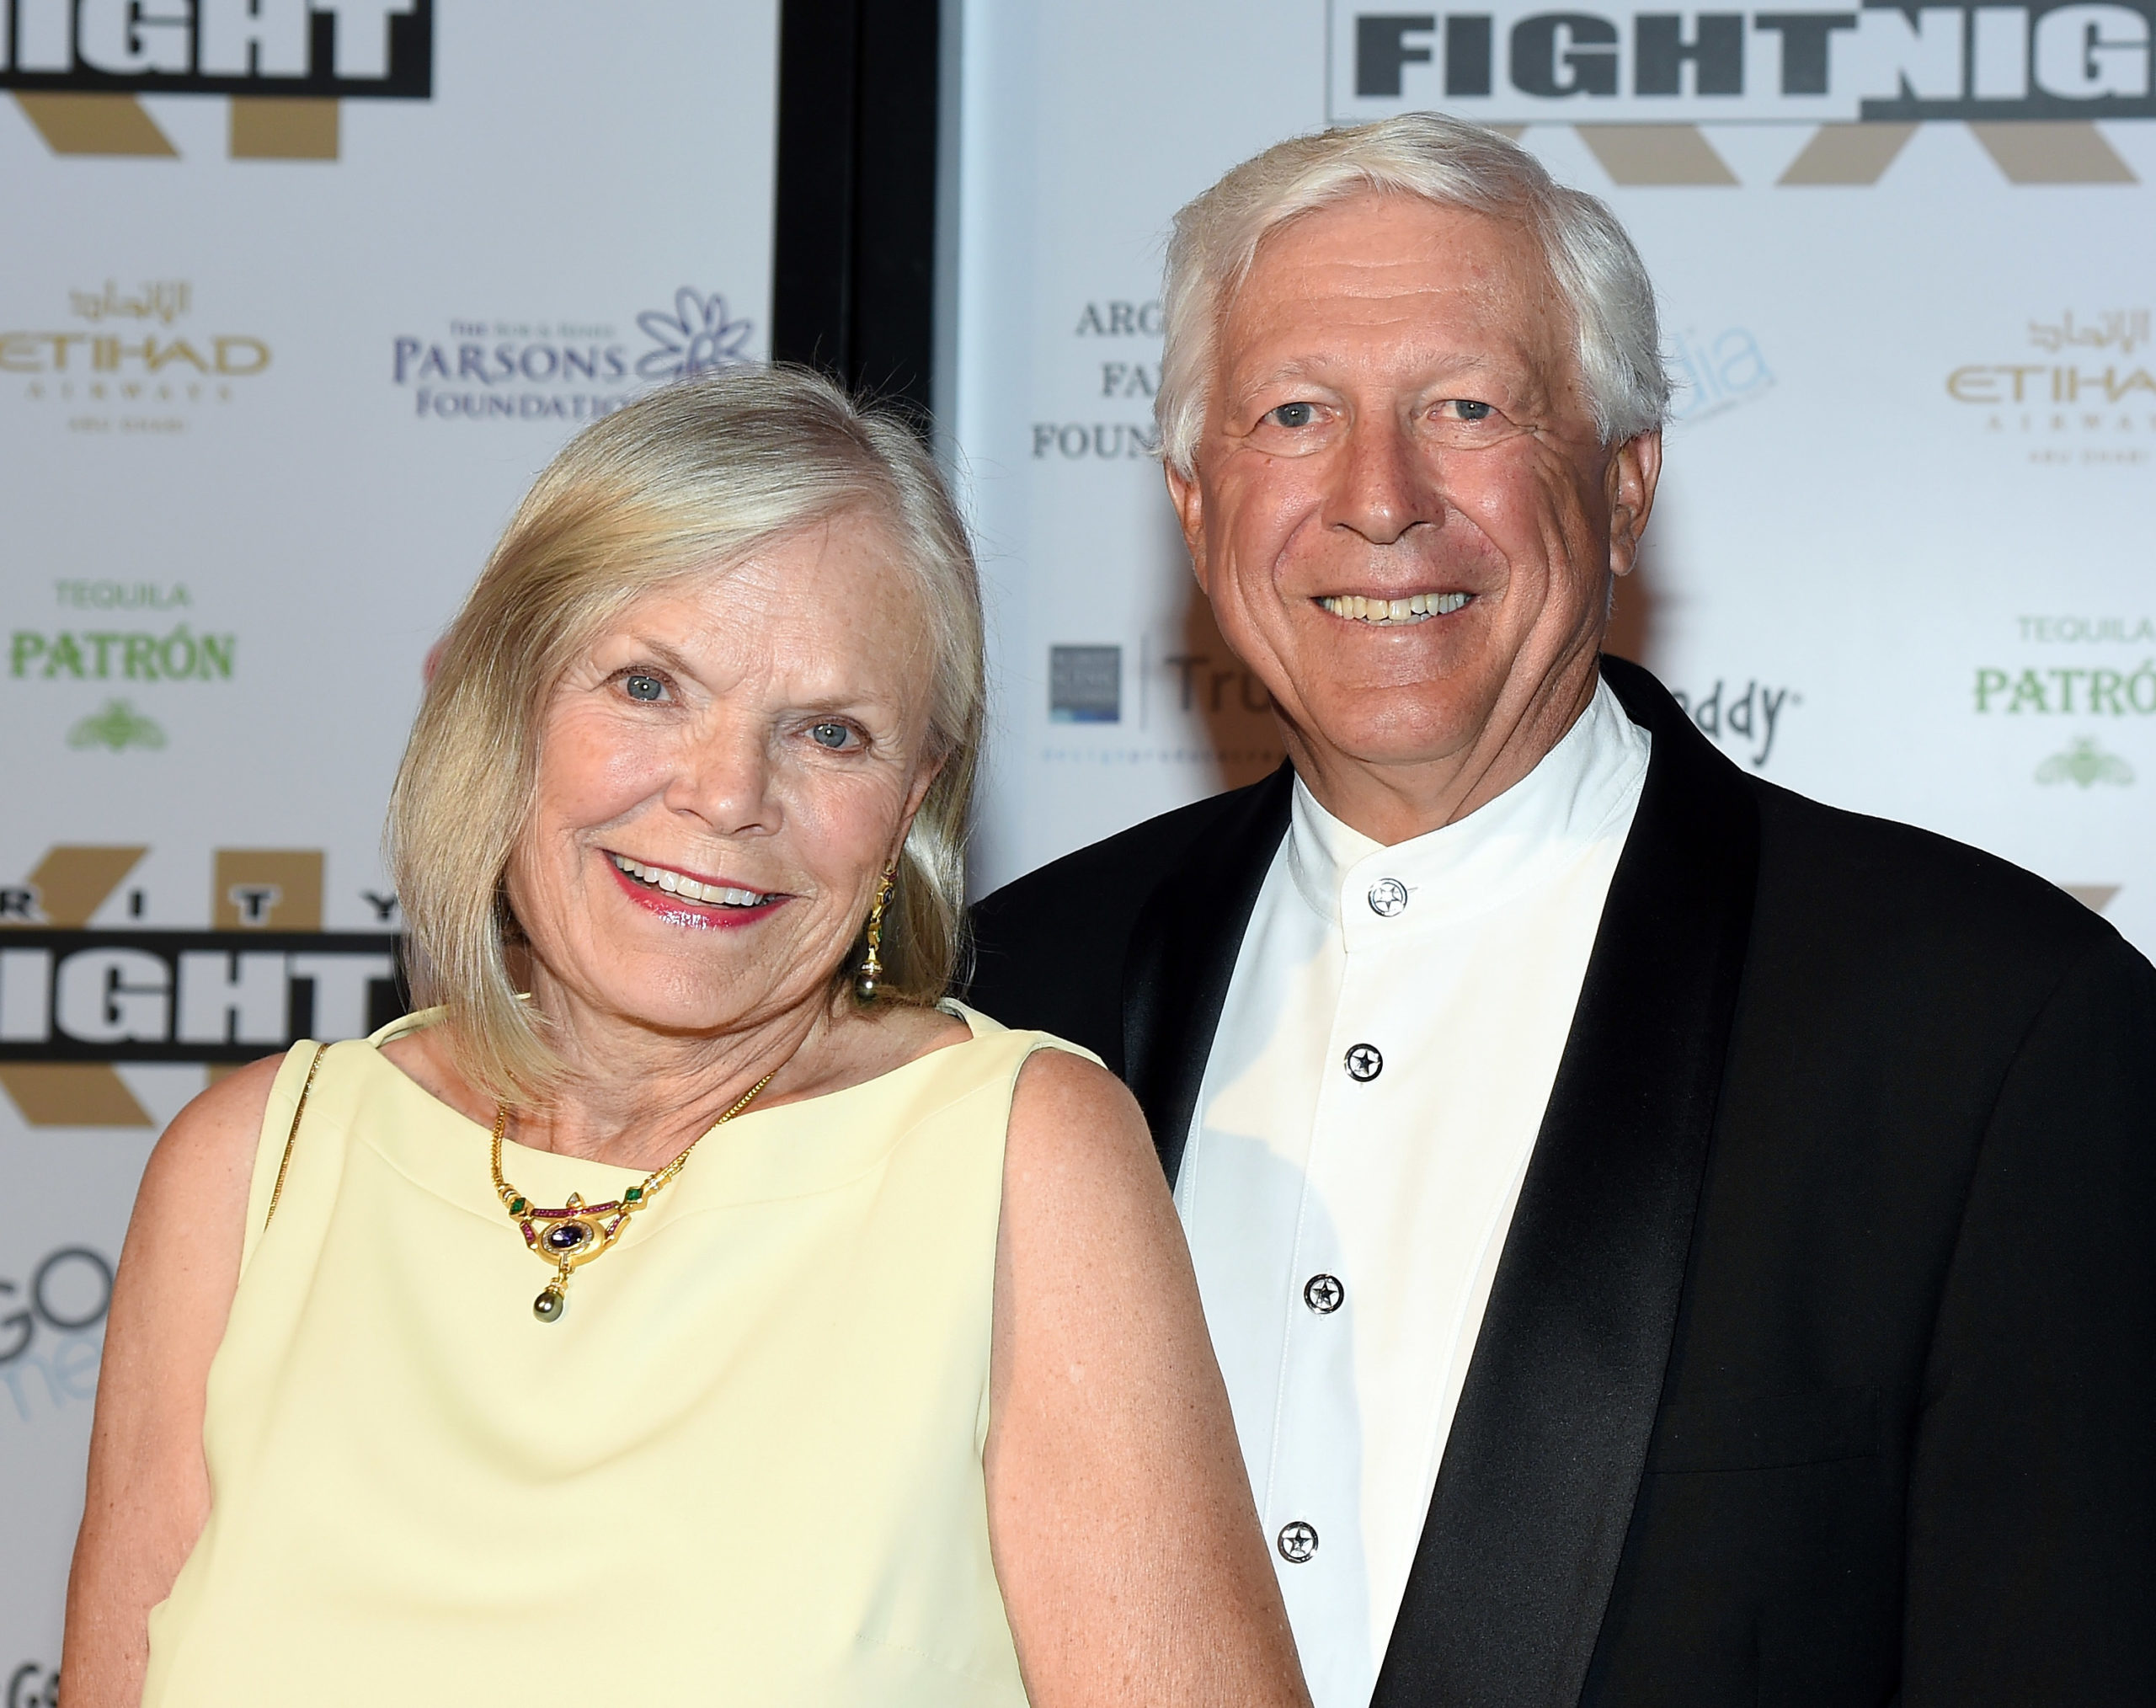 Foster and Lynn Friess attend Muhammad Ali's Celebrity Fight Night XXI at the JW Marriott Phoenix Desert Ridge Resort & Spa on March 28, 2015 in Phoenix, Arizona. (Ethan Miller/Getty Images for Celebrity Fight Night)